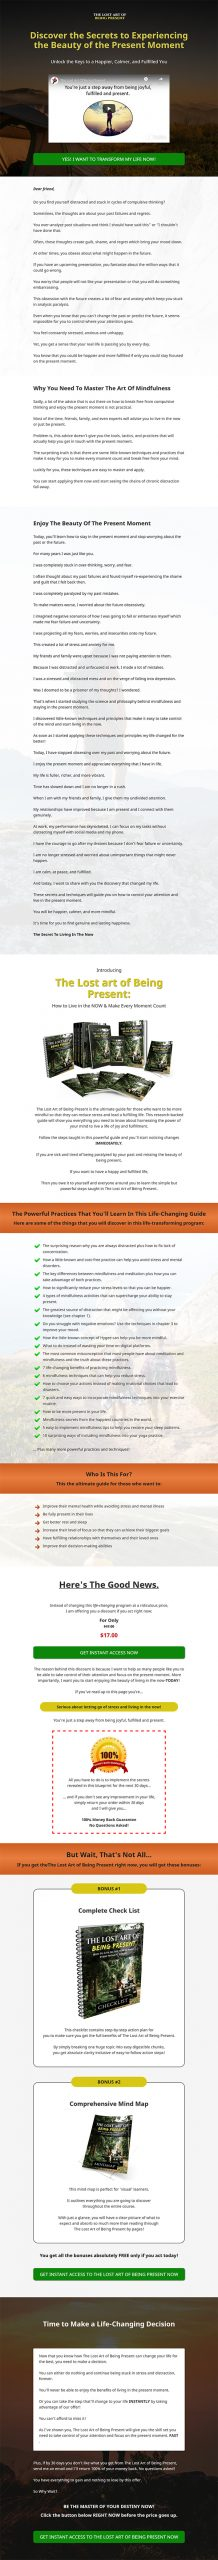 Lost Art of Being Present Ebook and Videos MRR